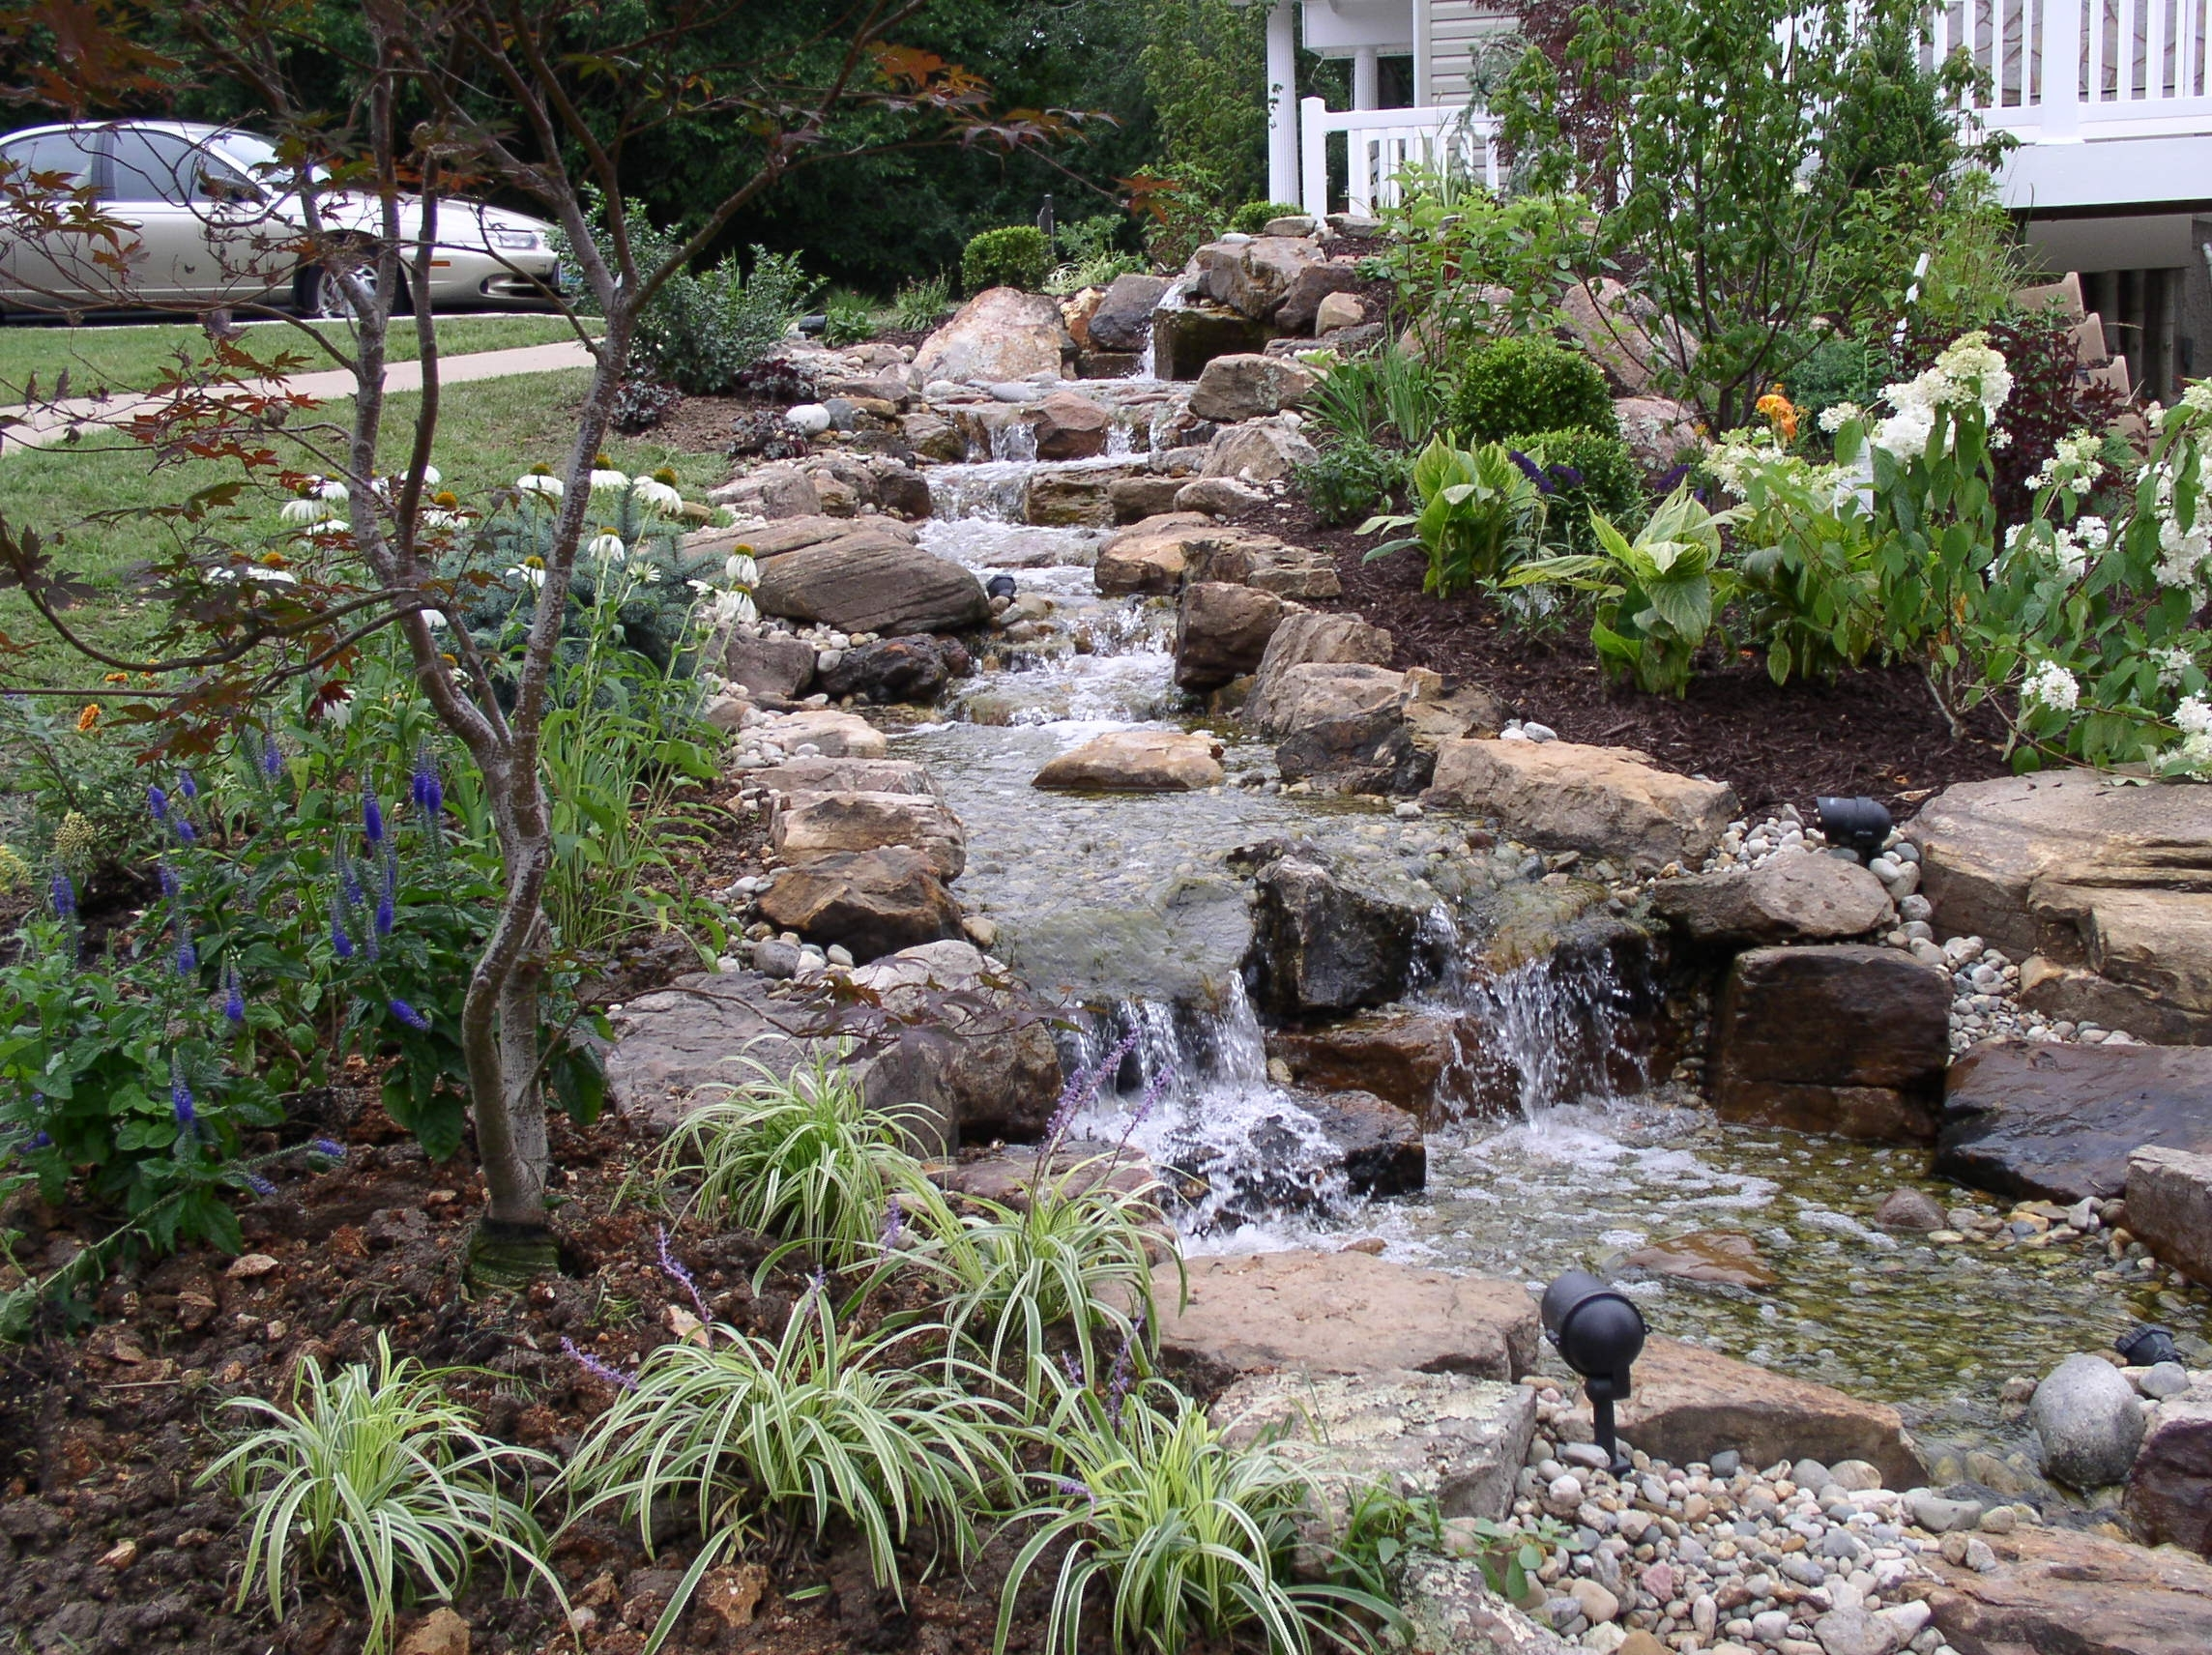 Image of: Best 25 Backyard Stream Ideas On Pinterest Garden Stream Pond Inside Drainage Ditch Landscaping Ideas Natural Drainage Ditch Landscaping Ideas